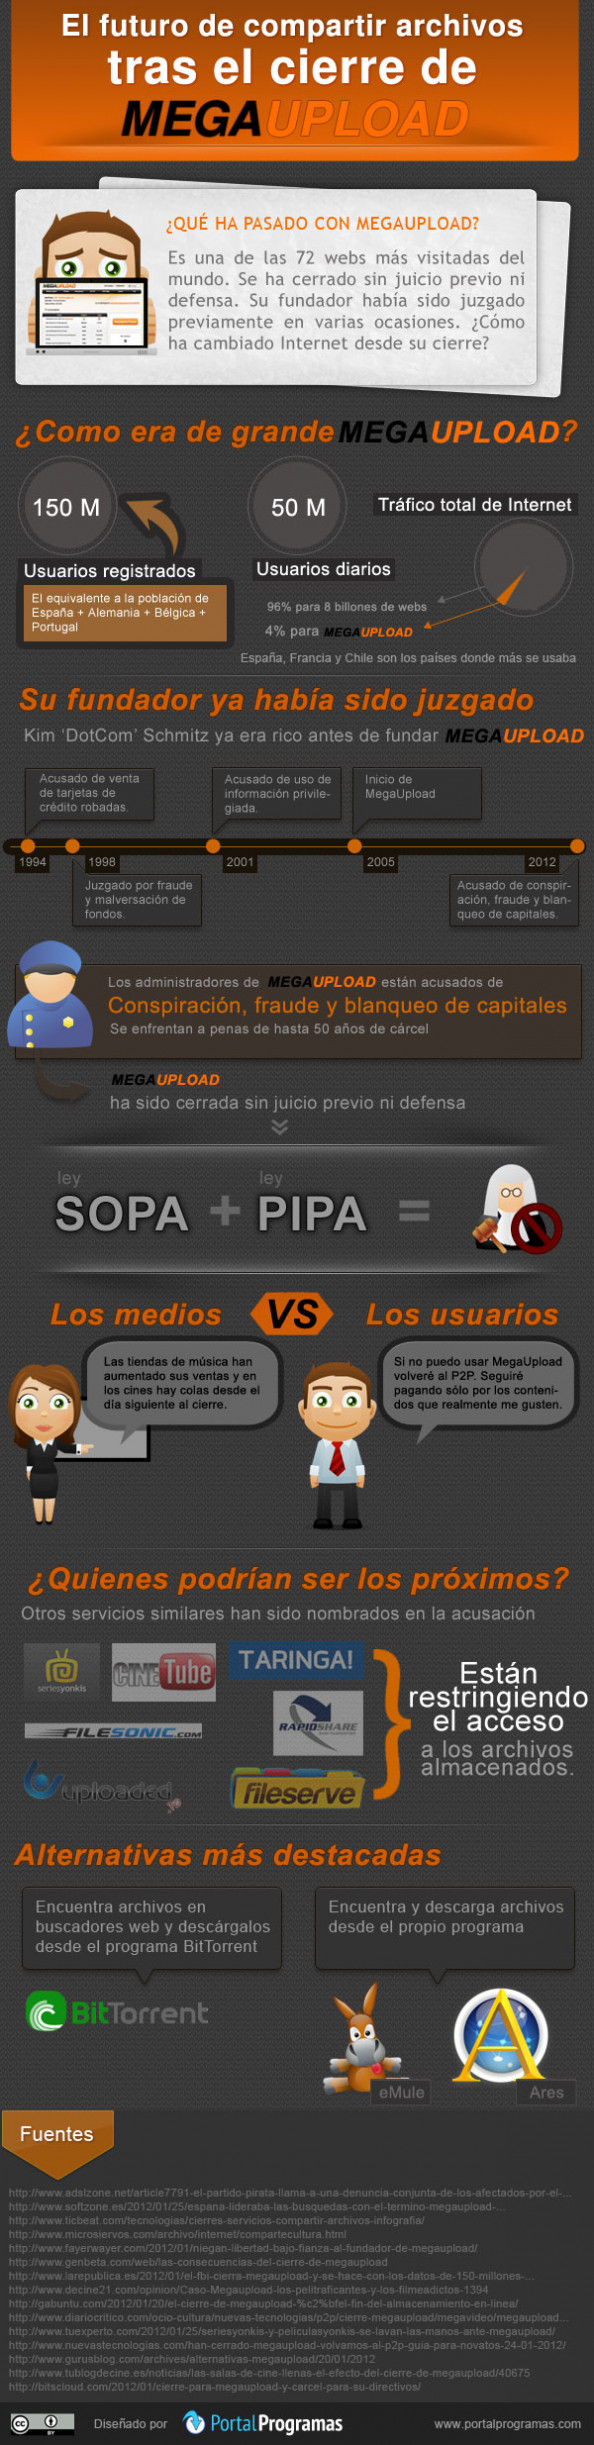 El futuro de compartir archivos tras el cierre de MegaUpload Infographic